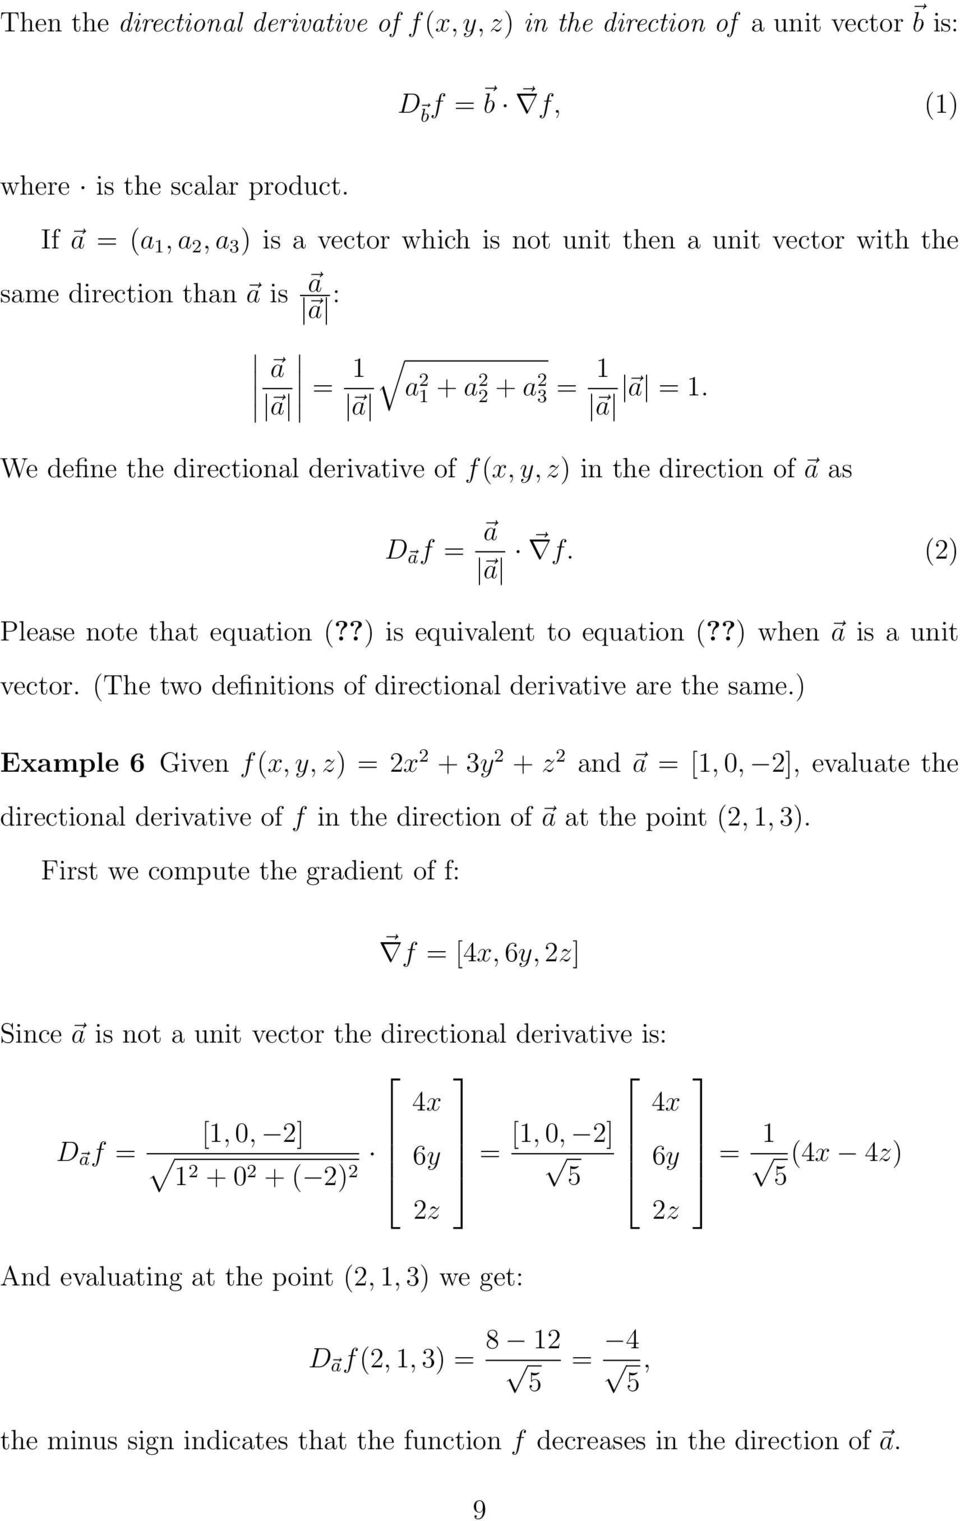 a a We define the directional derivative of f(x, y, z) in the direction of a as D a f = a a f. (2) Please note that equation (??) is equivalent to equation (??) when a is a unit vector.